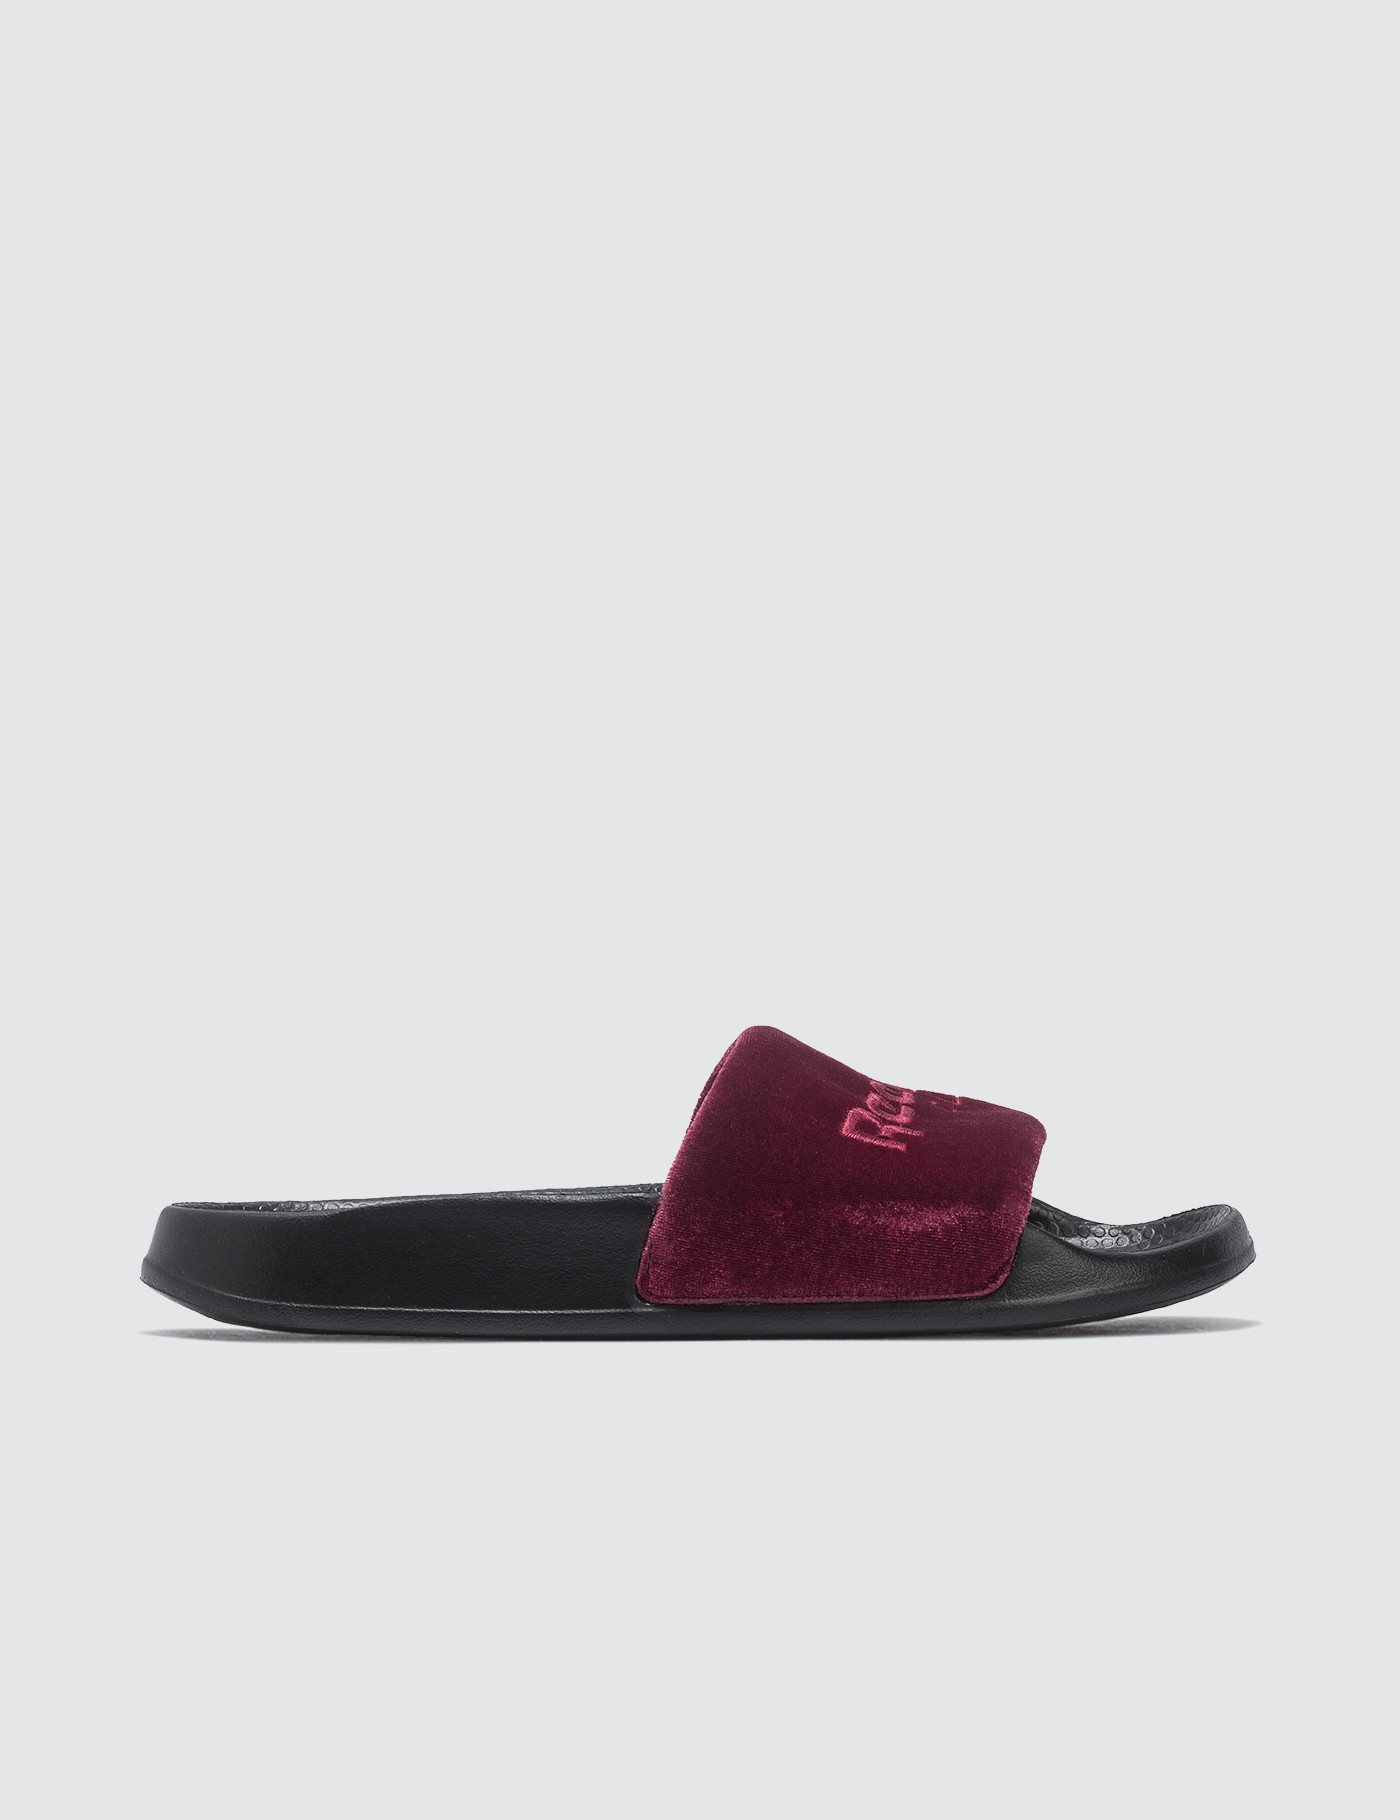 32a10bf028be Buy Original Reebok Classic Slide at Indonesia